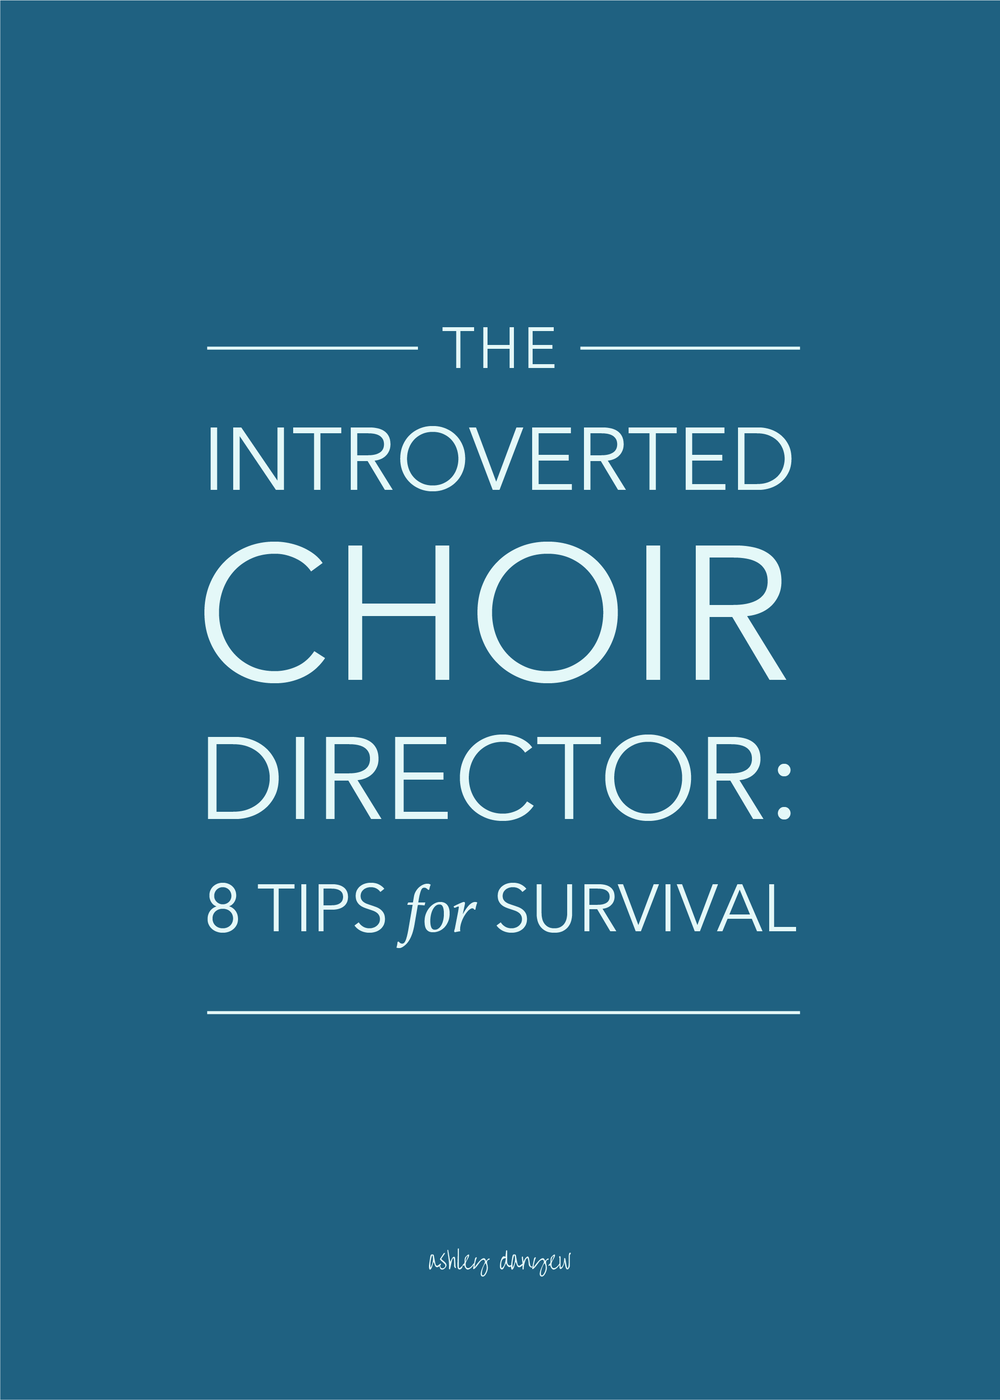 Copy of The Introverted Choir Director: 8 Tips for Survival